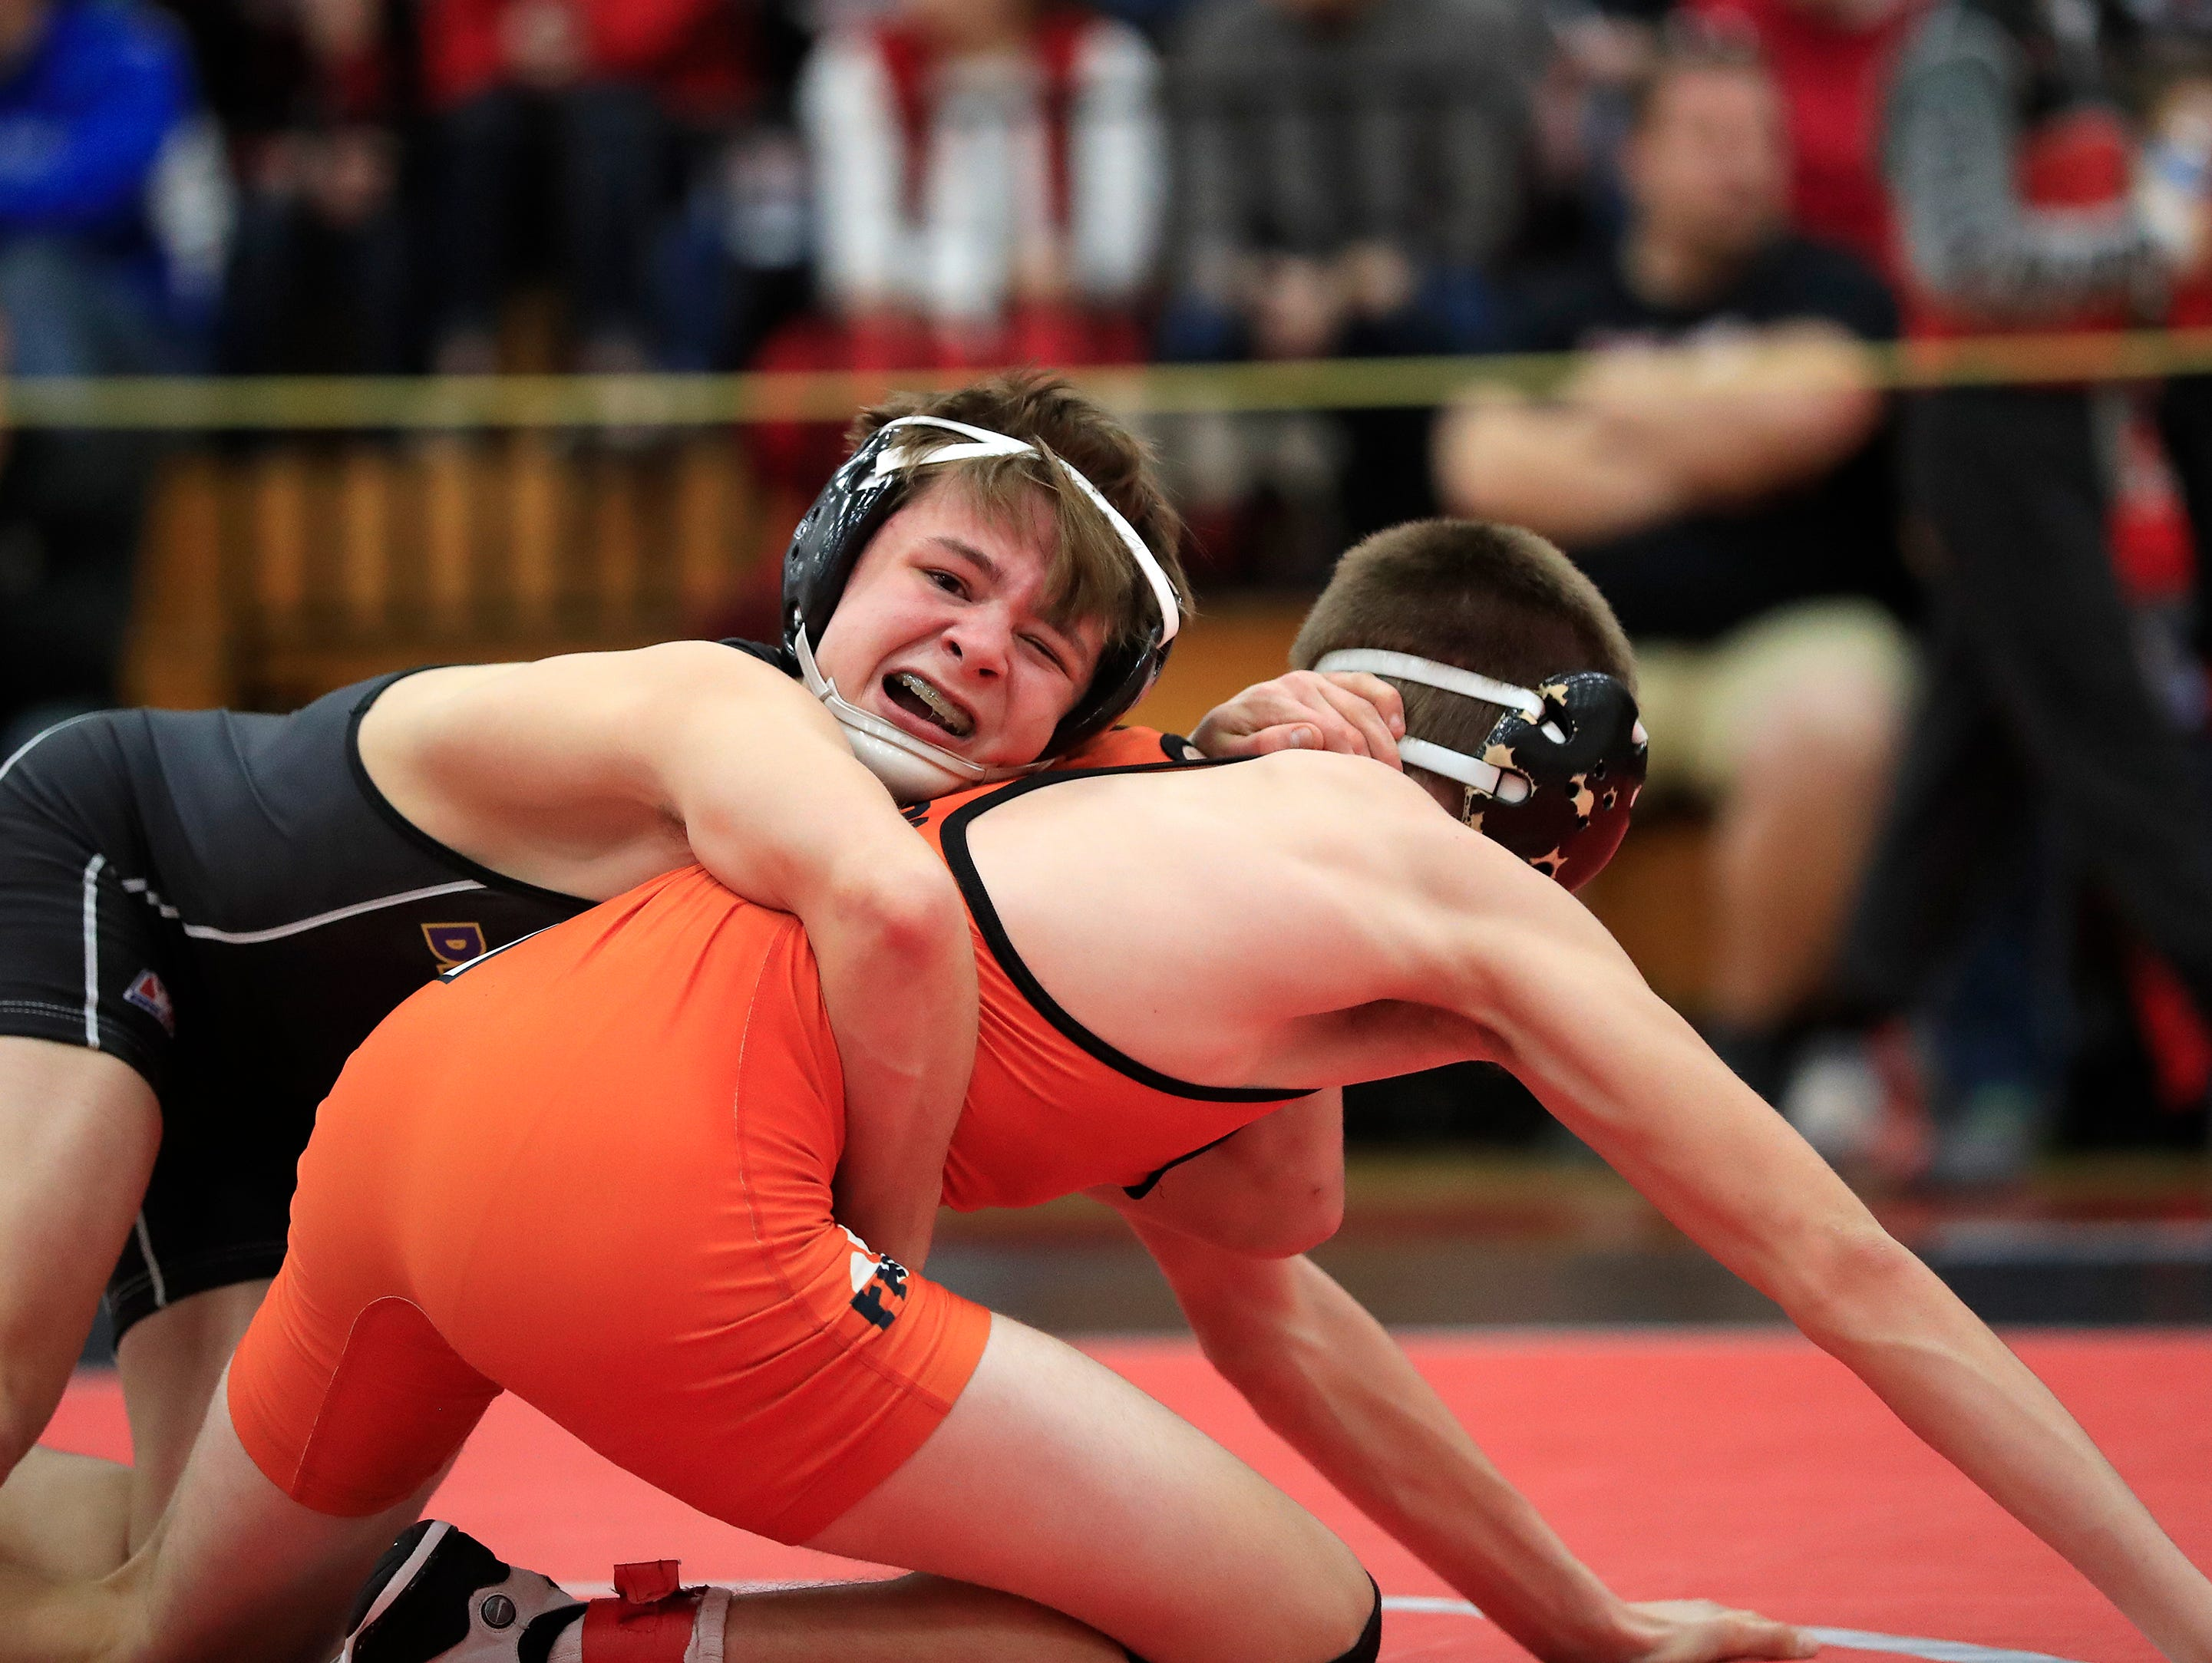 Denmark's Brock Bergelin wrestles Oconto Falls' Bryce Peterson in the 120-pound championship bout on Saturday at the Pulaski Invitational wrestling tournament. Bergelin won the match with a 13-2 decision to earn his 150th win of his high school career.